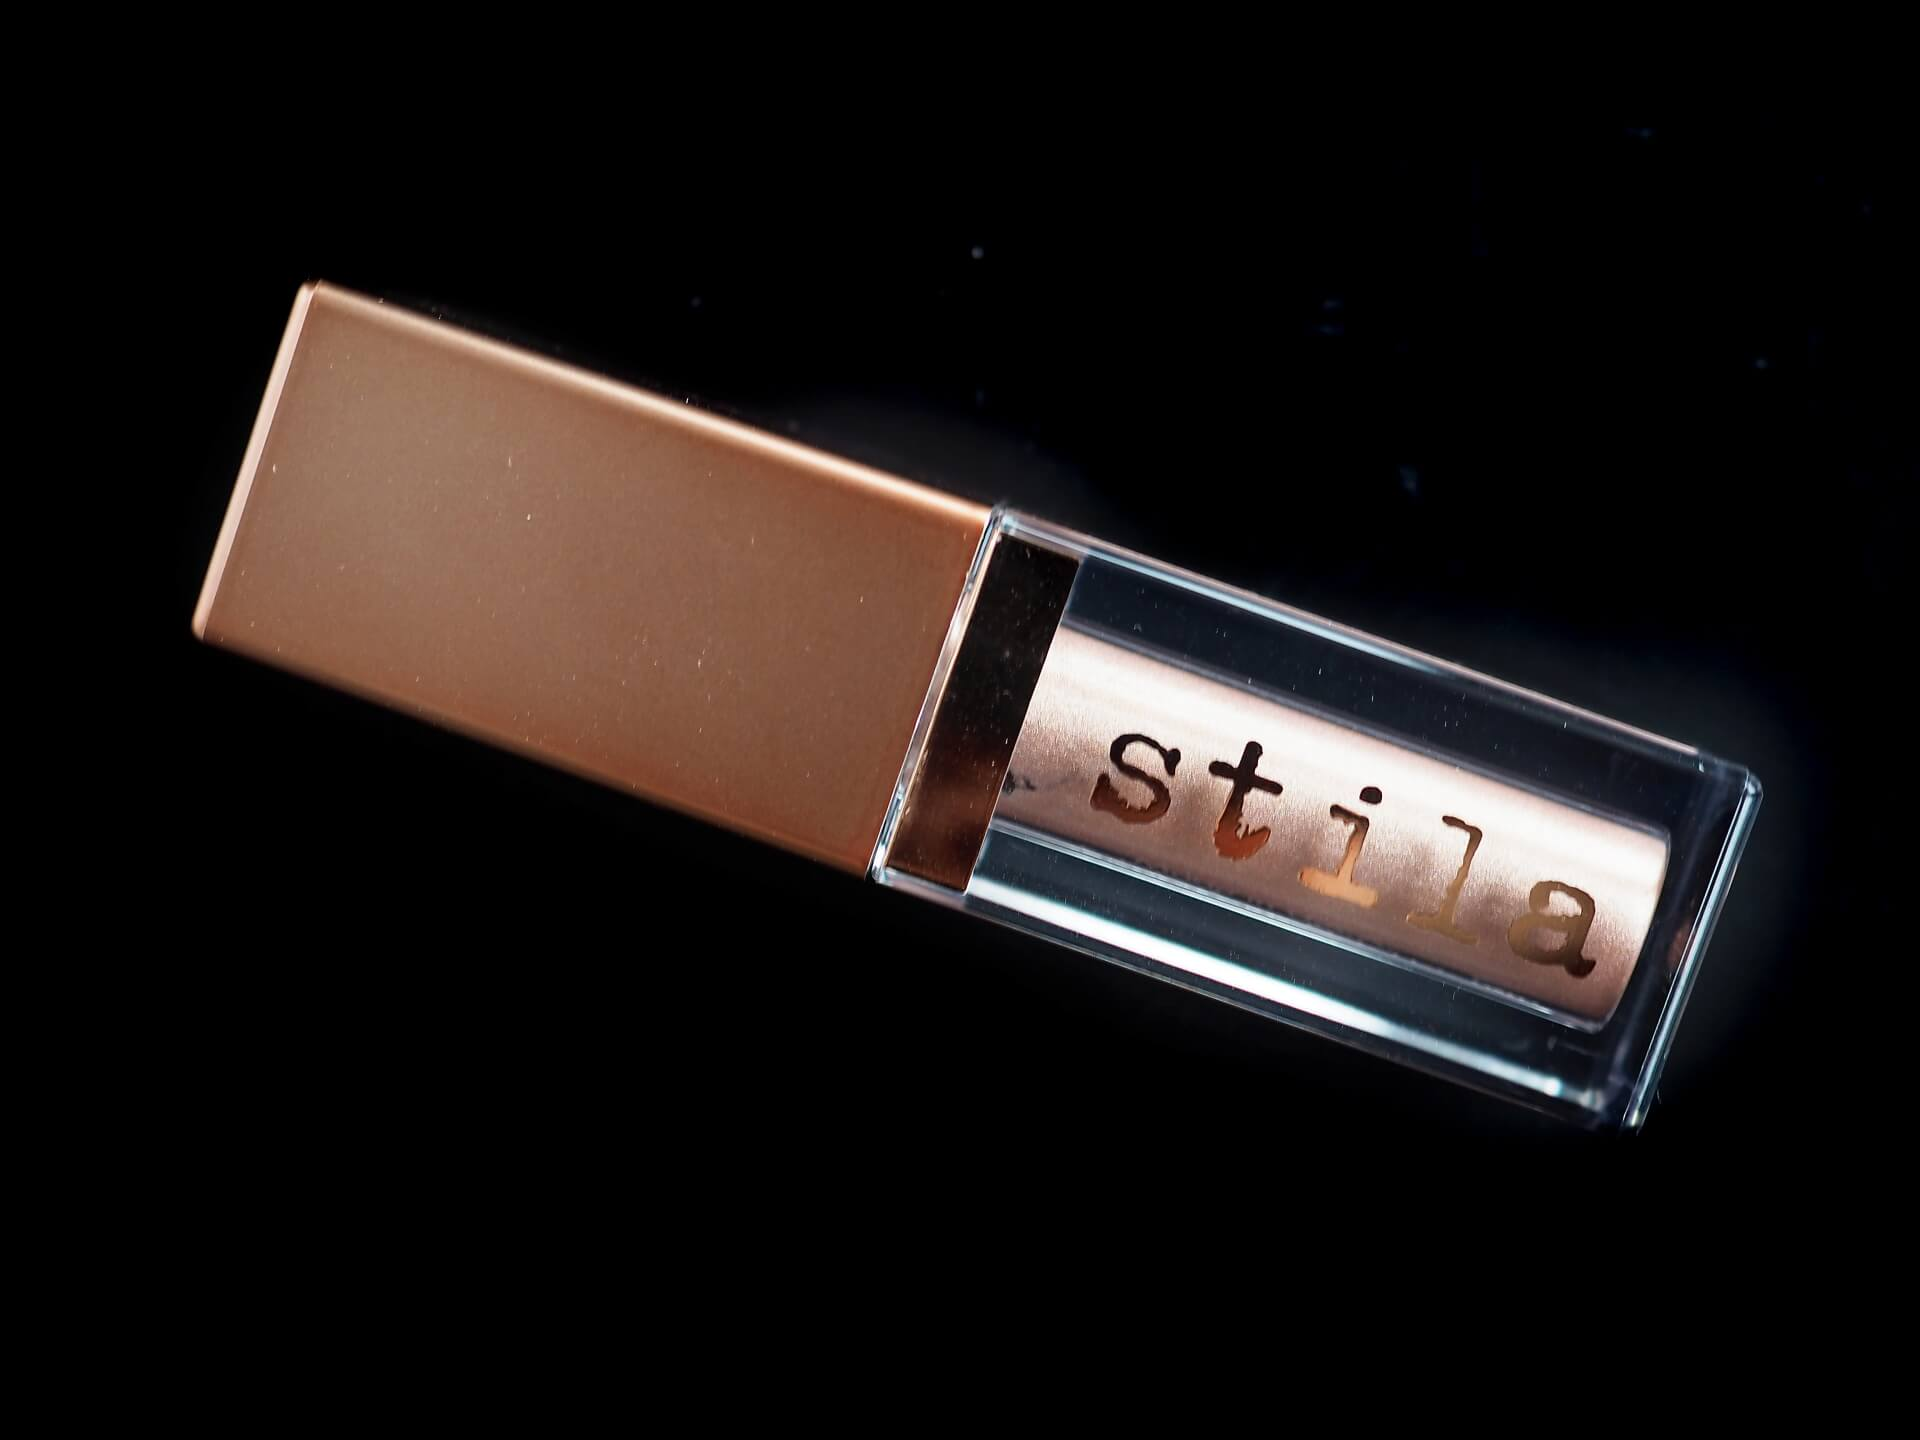 Stila Kitten Shimmer & Glow Liquid Eye Shadow